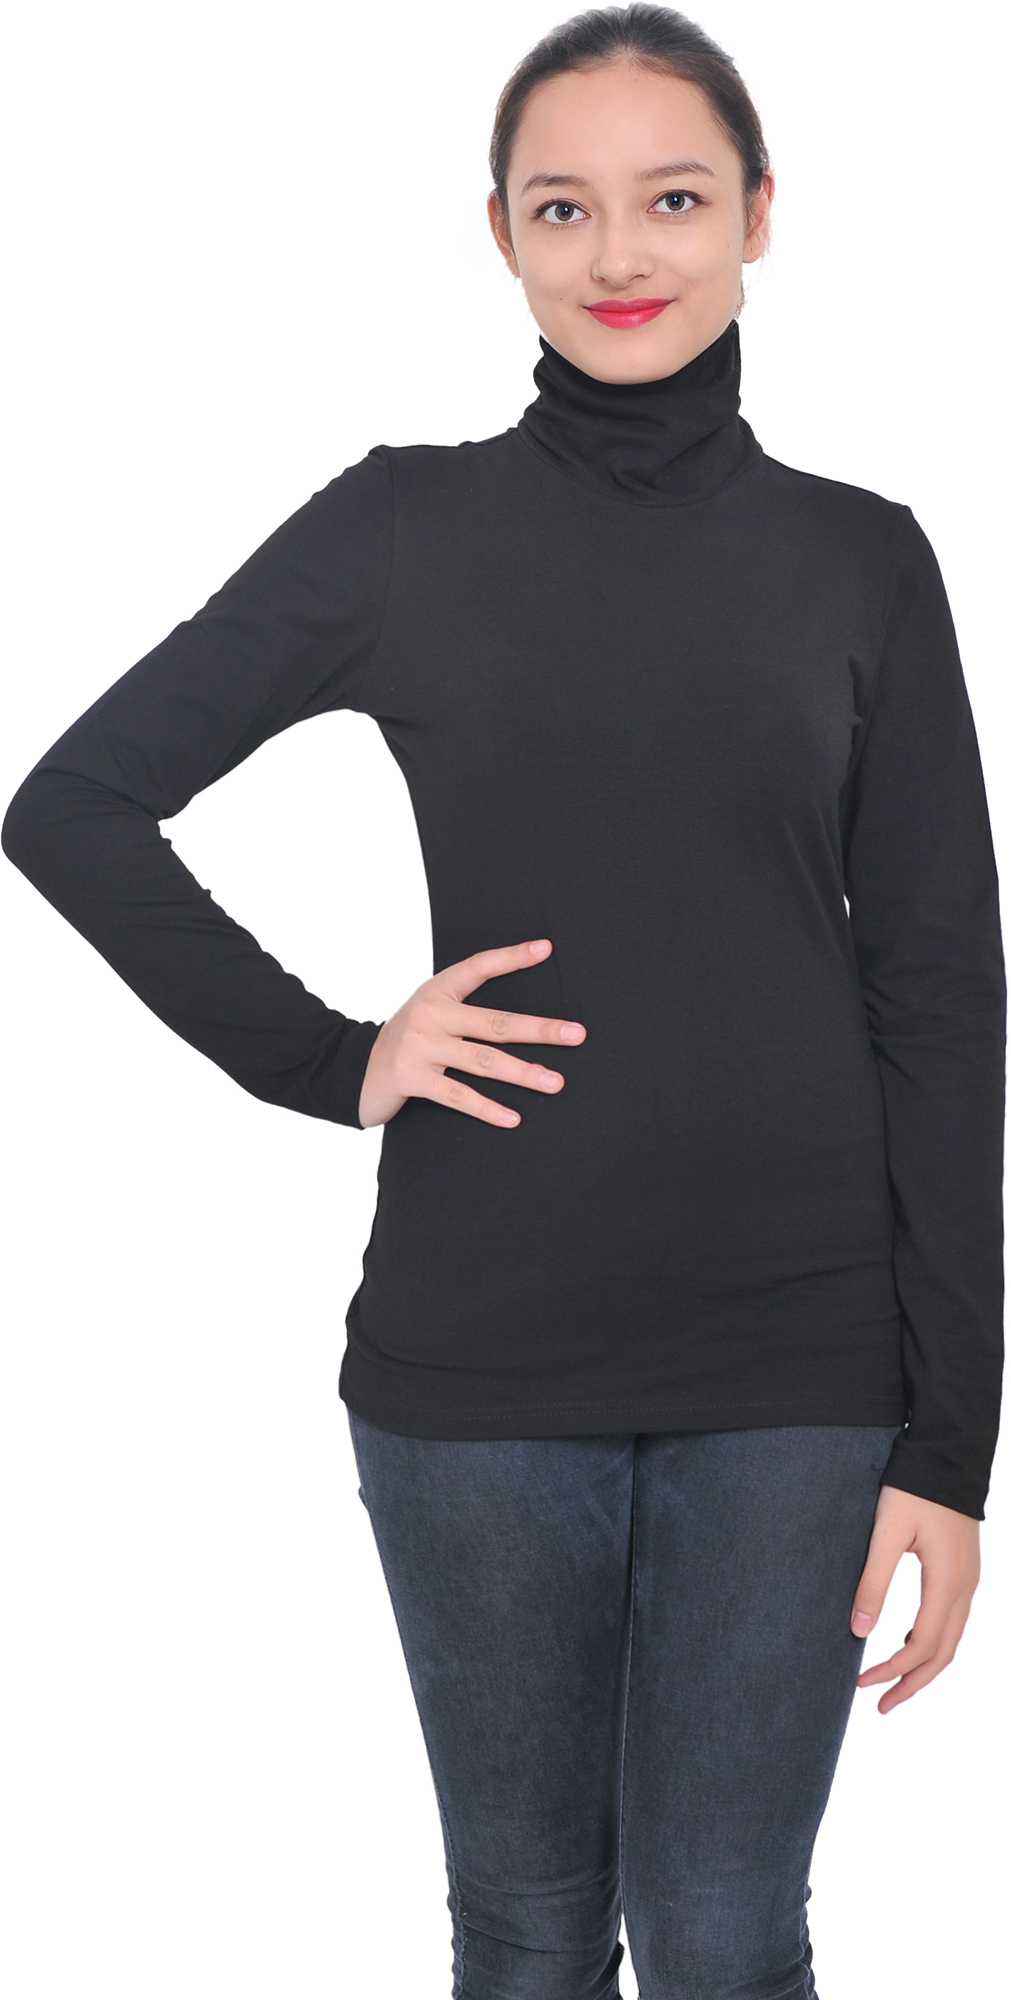 Free shipping BOTH ways on womens mock turtleneck tops, from our vast selection of styles. Fast delivery, and 24/7/ real-person service with a smile. Click or call